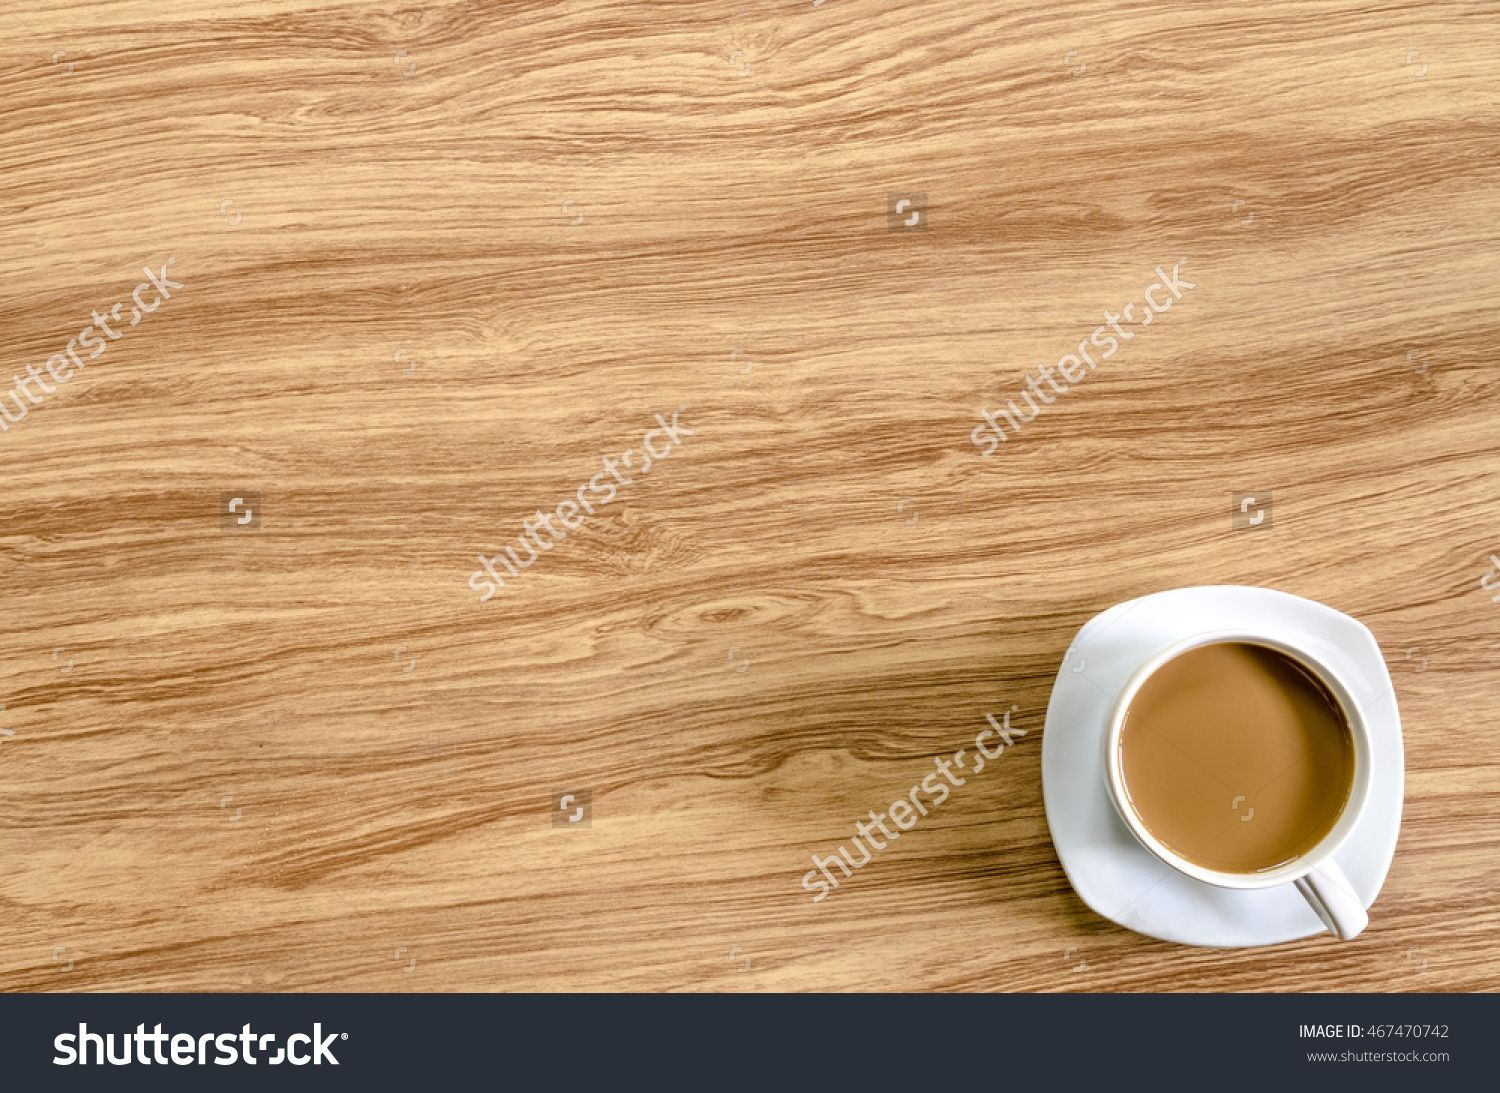 Coffee On Wood Table Stock Photo 467470742 : Shutterstock